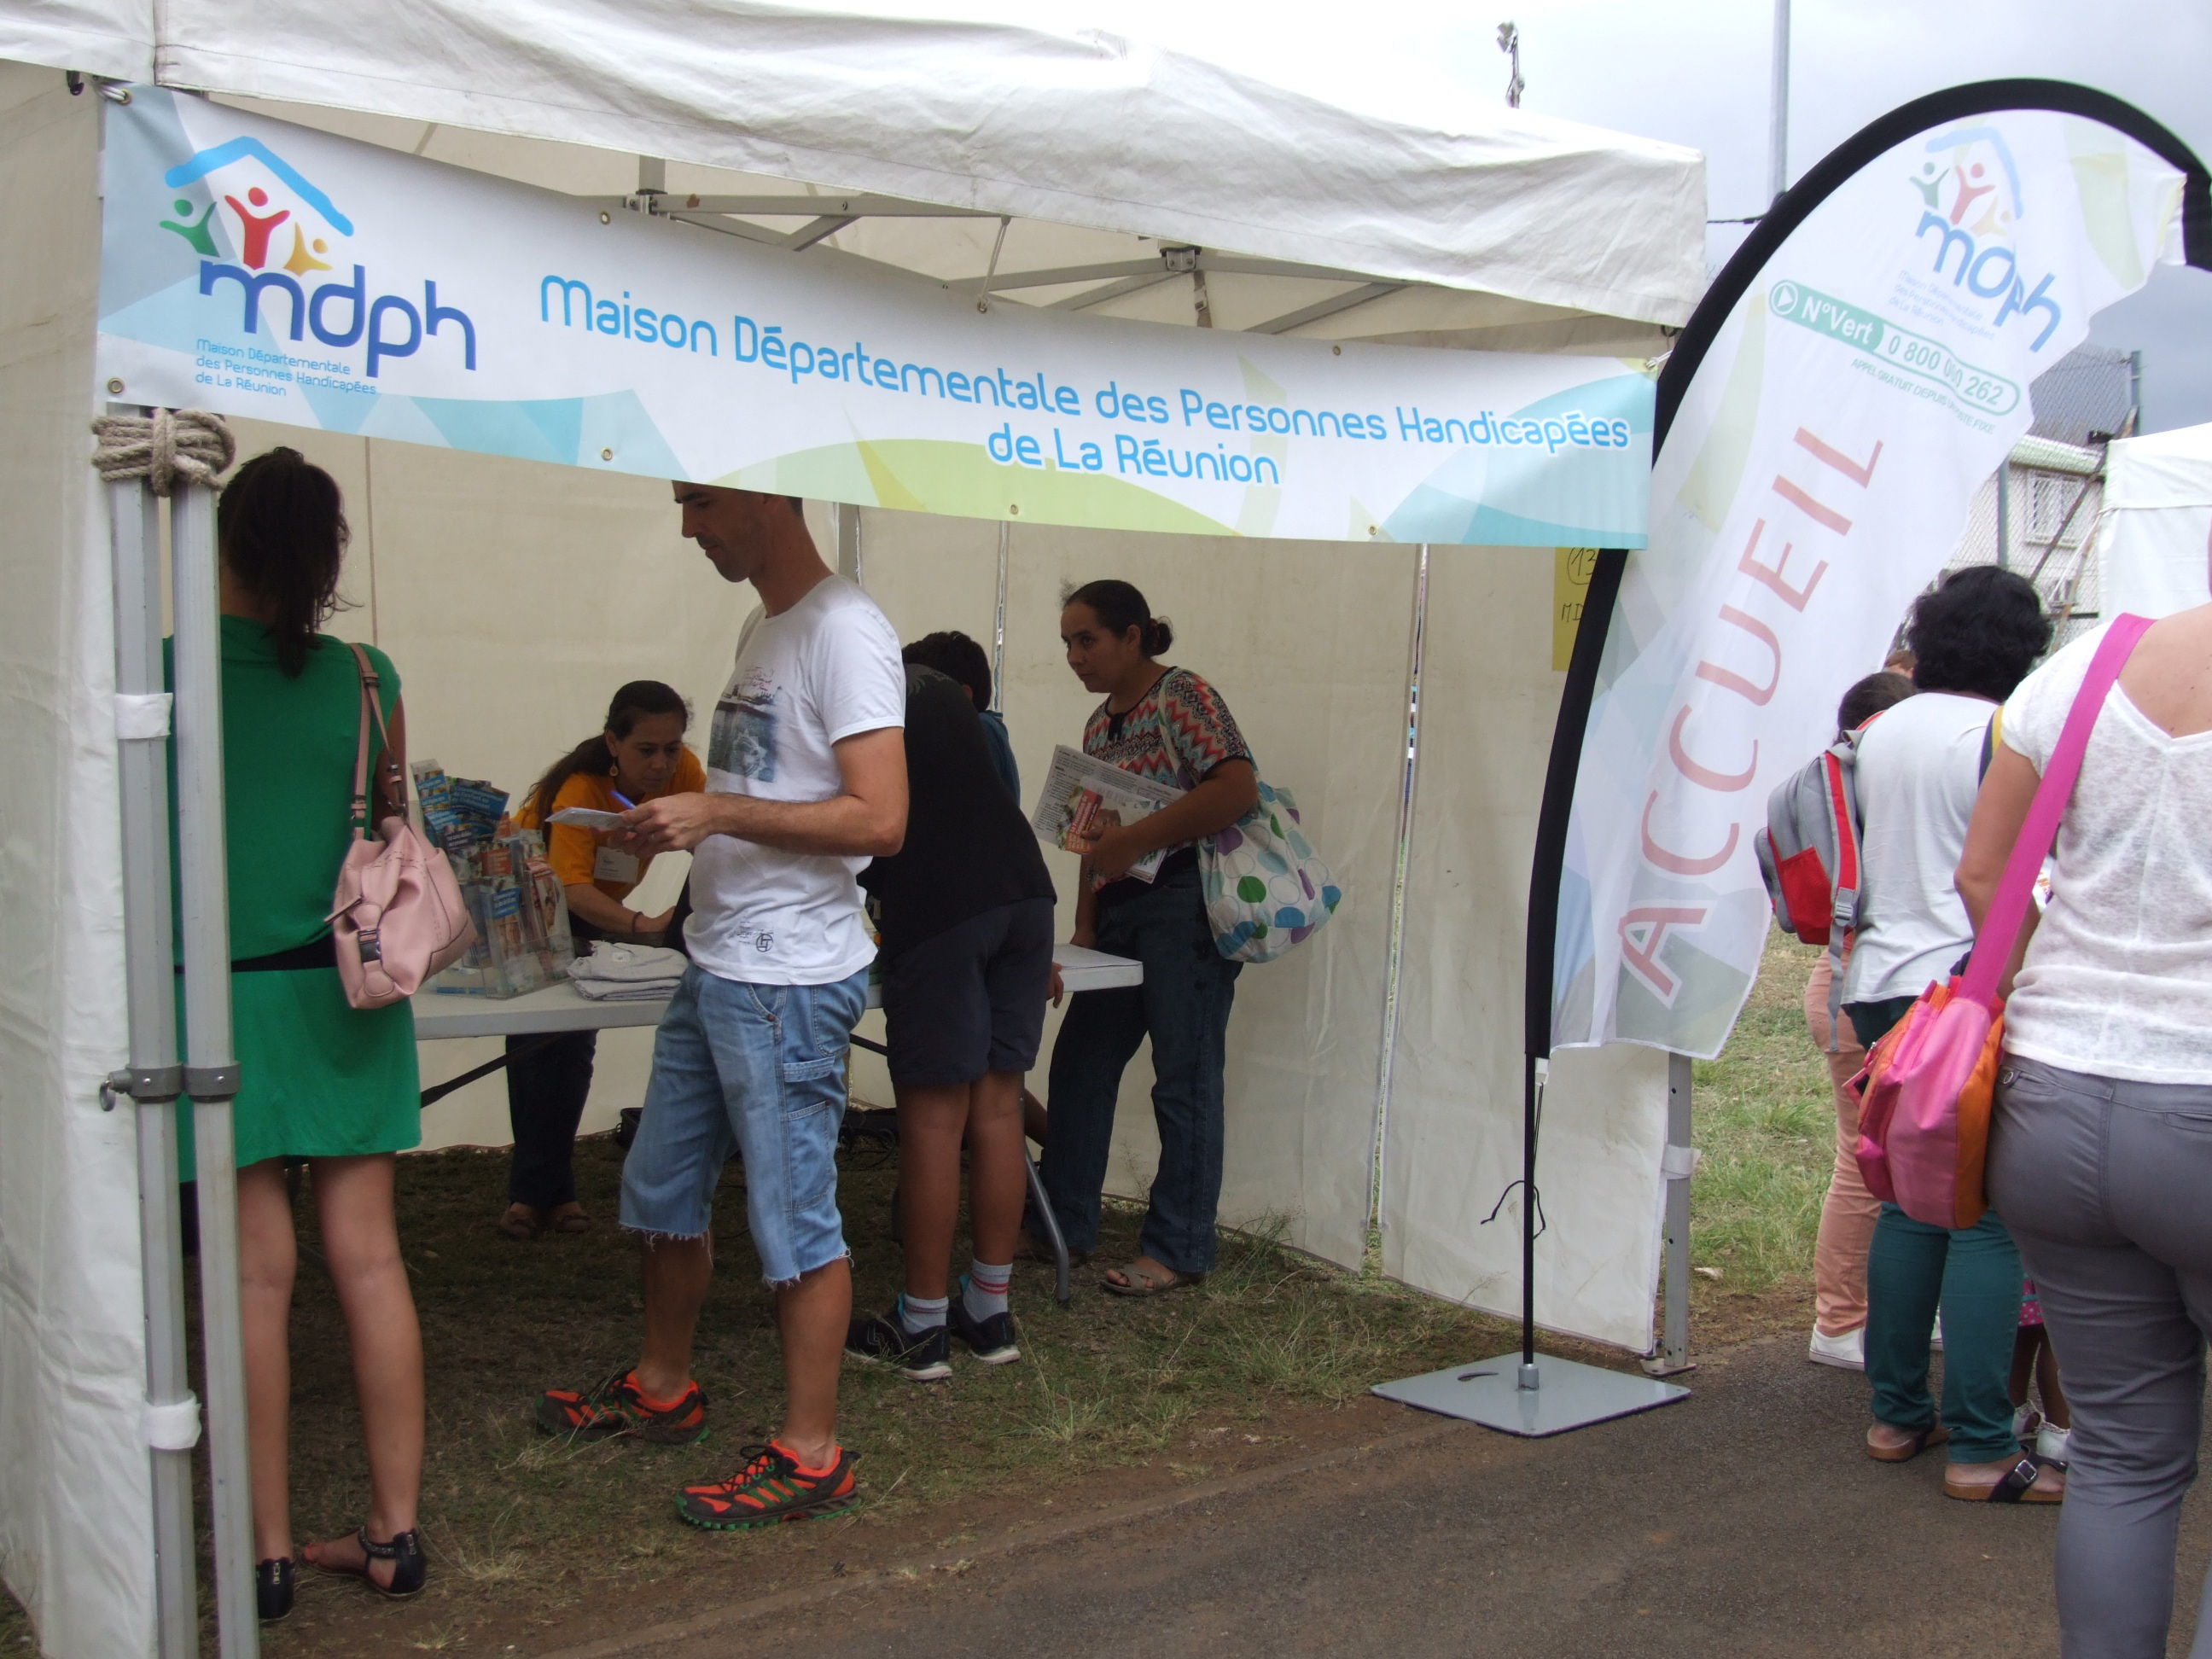 Photo Journee Nationale des Dys 2015 - 15 - Stand Maison Departemental des Personnes Handicapees.JPG